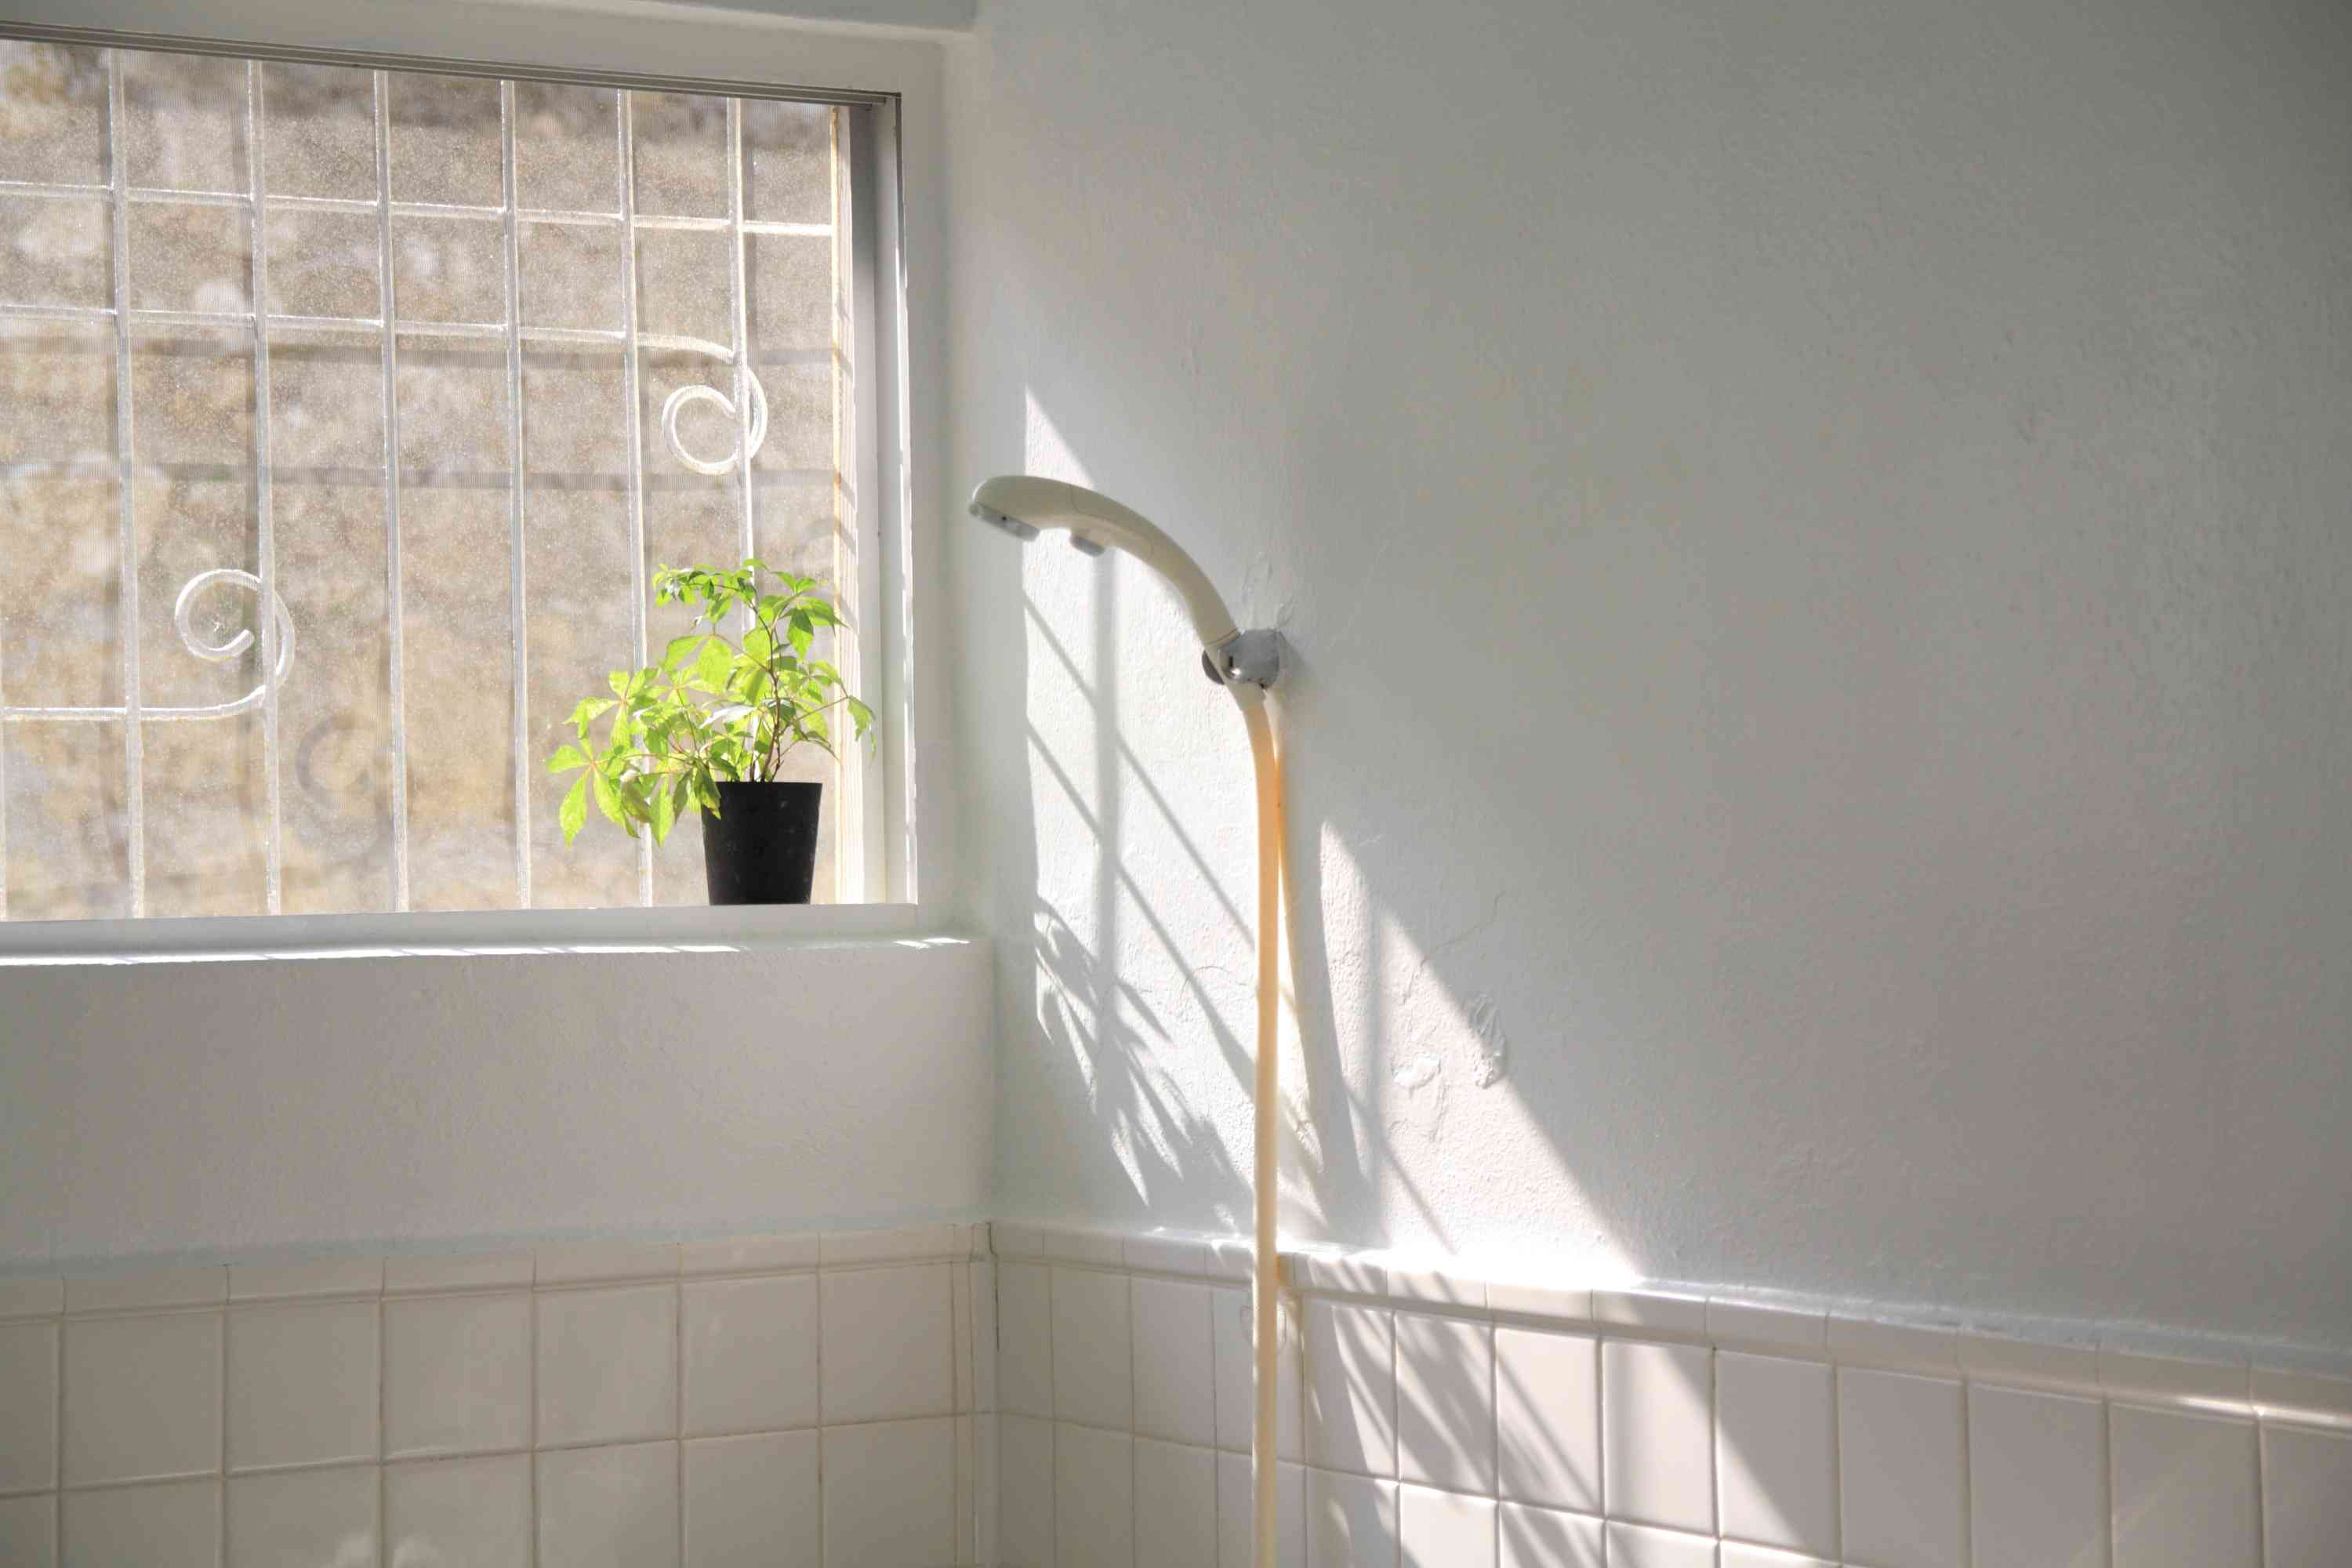 Shower and potted plant in bathroom